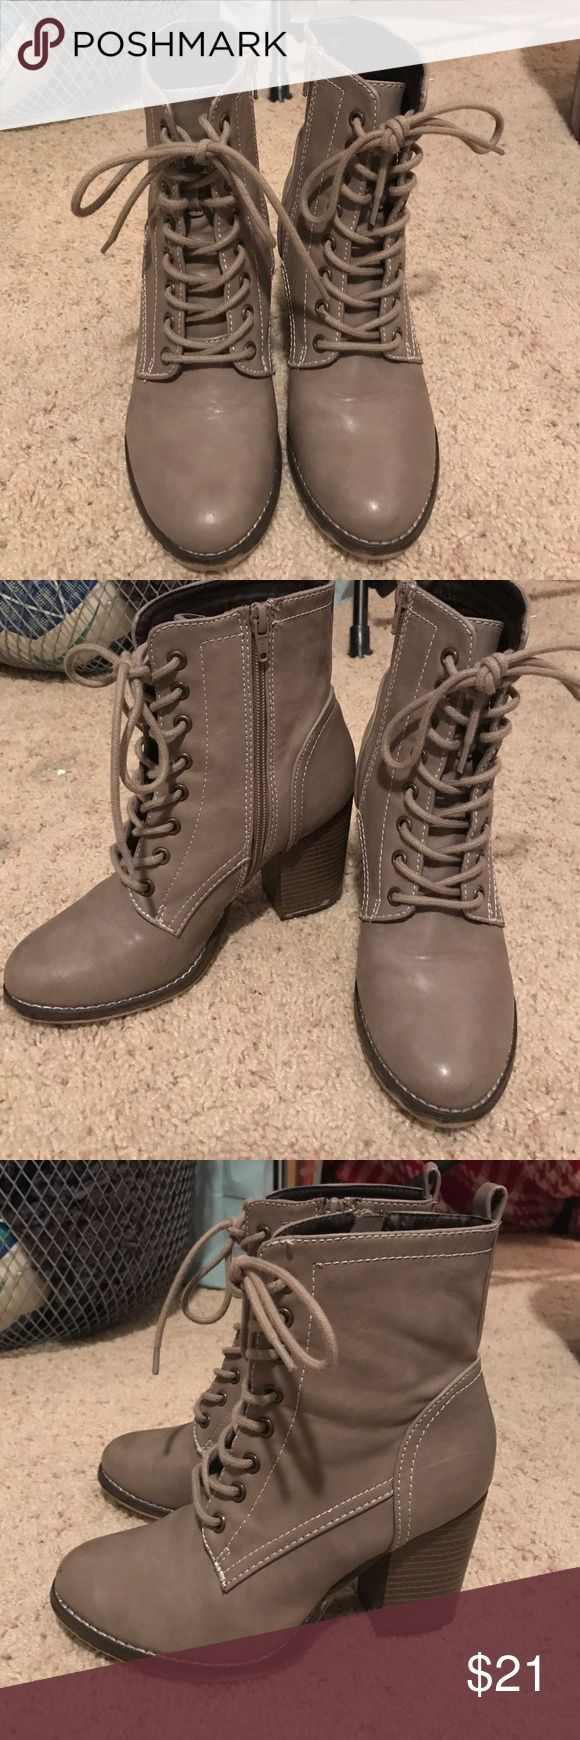 Thick heeled boots! Grey-brown color boots that lace up and a dark brown heel Candie's Shoes Wedges